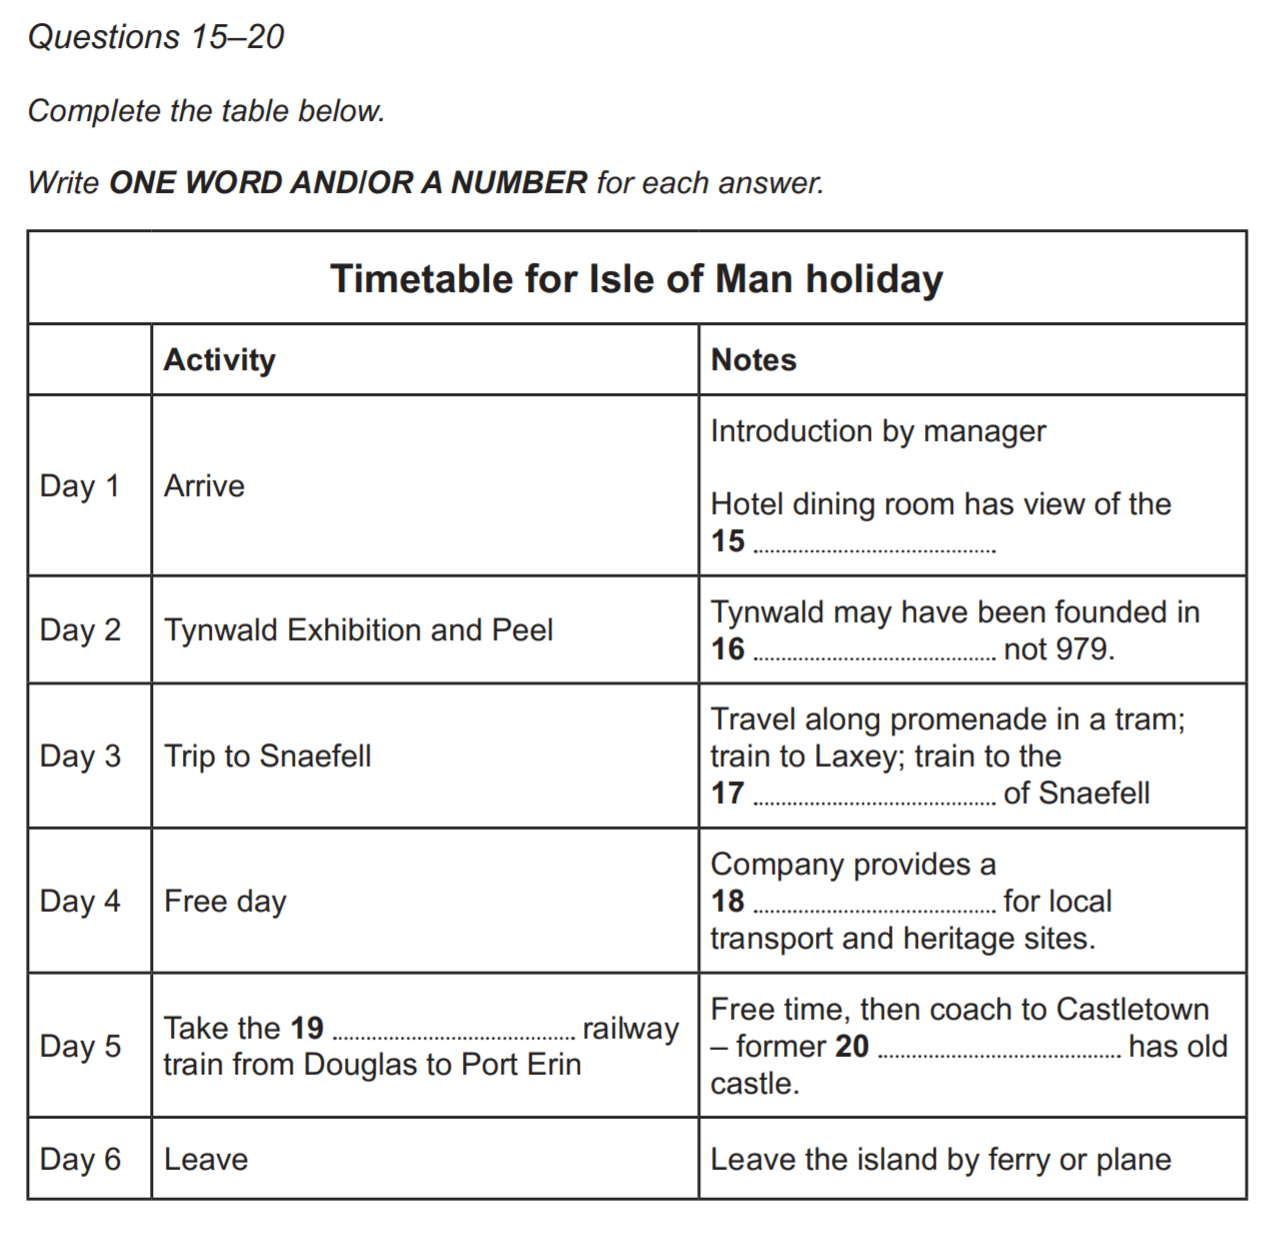 timetable for isle of man holiday ielts listening